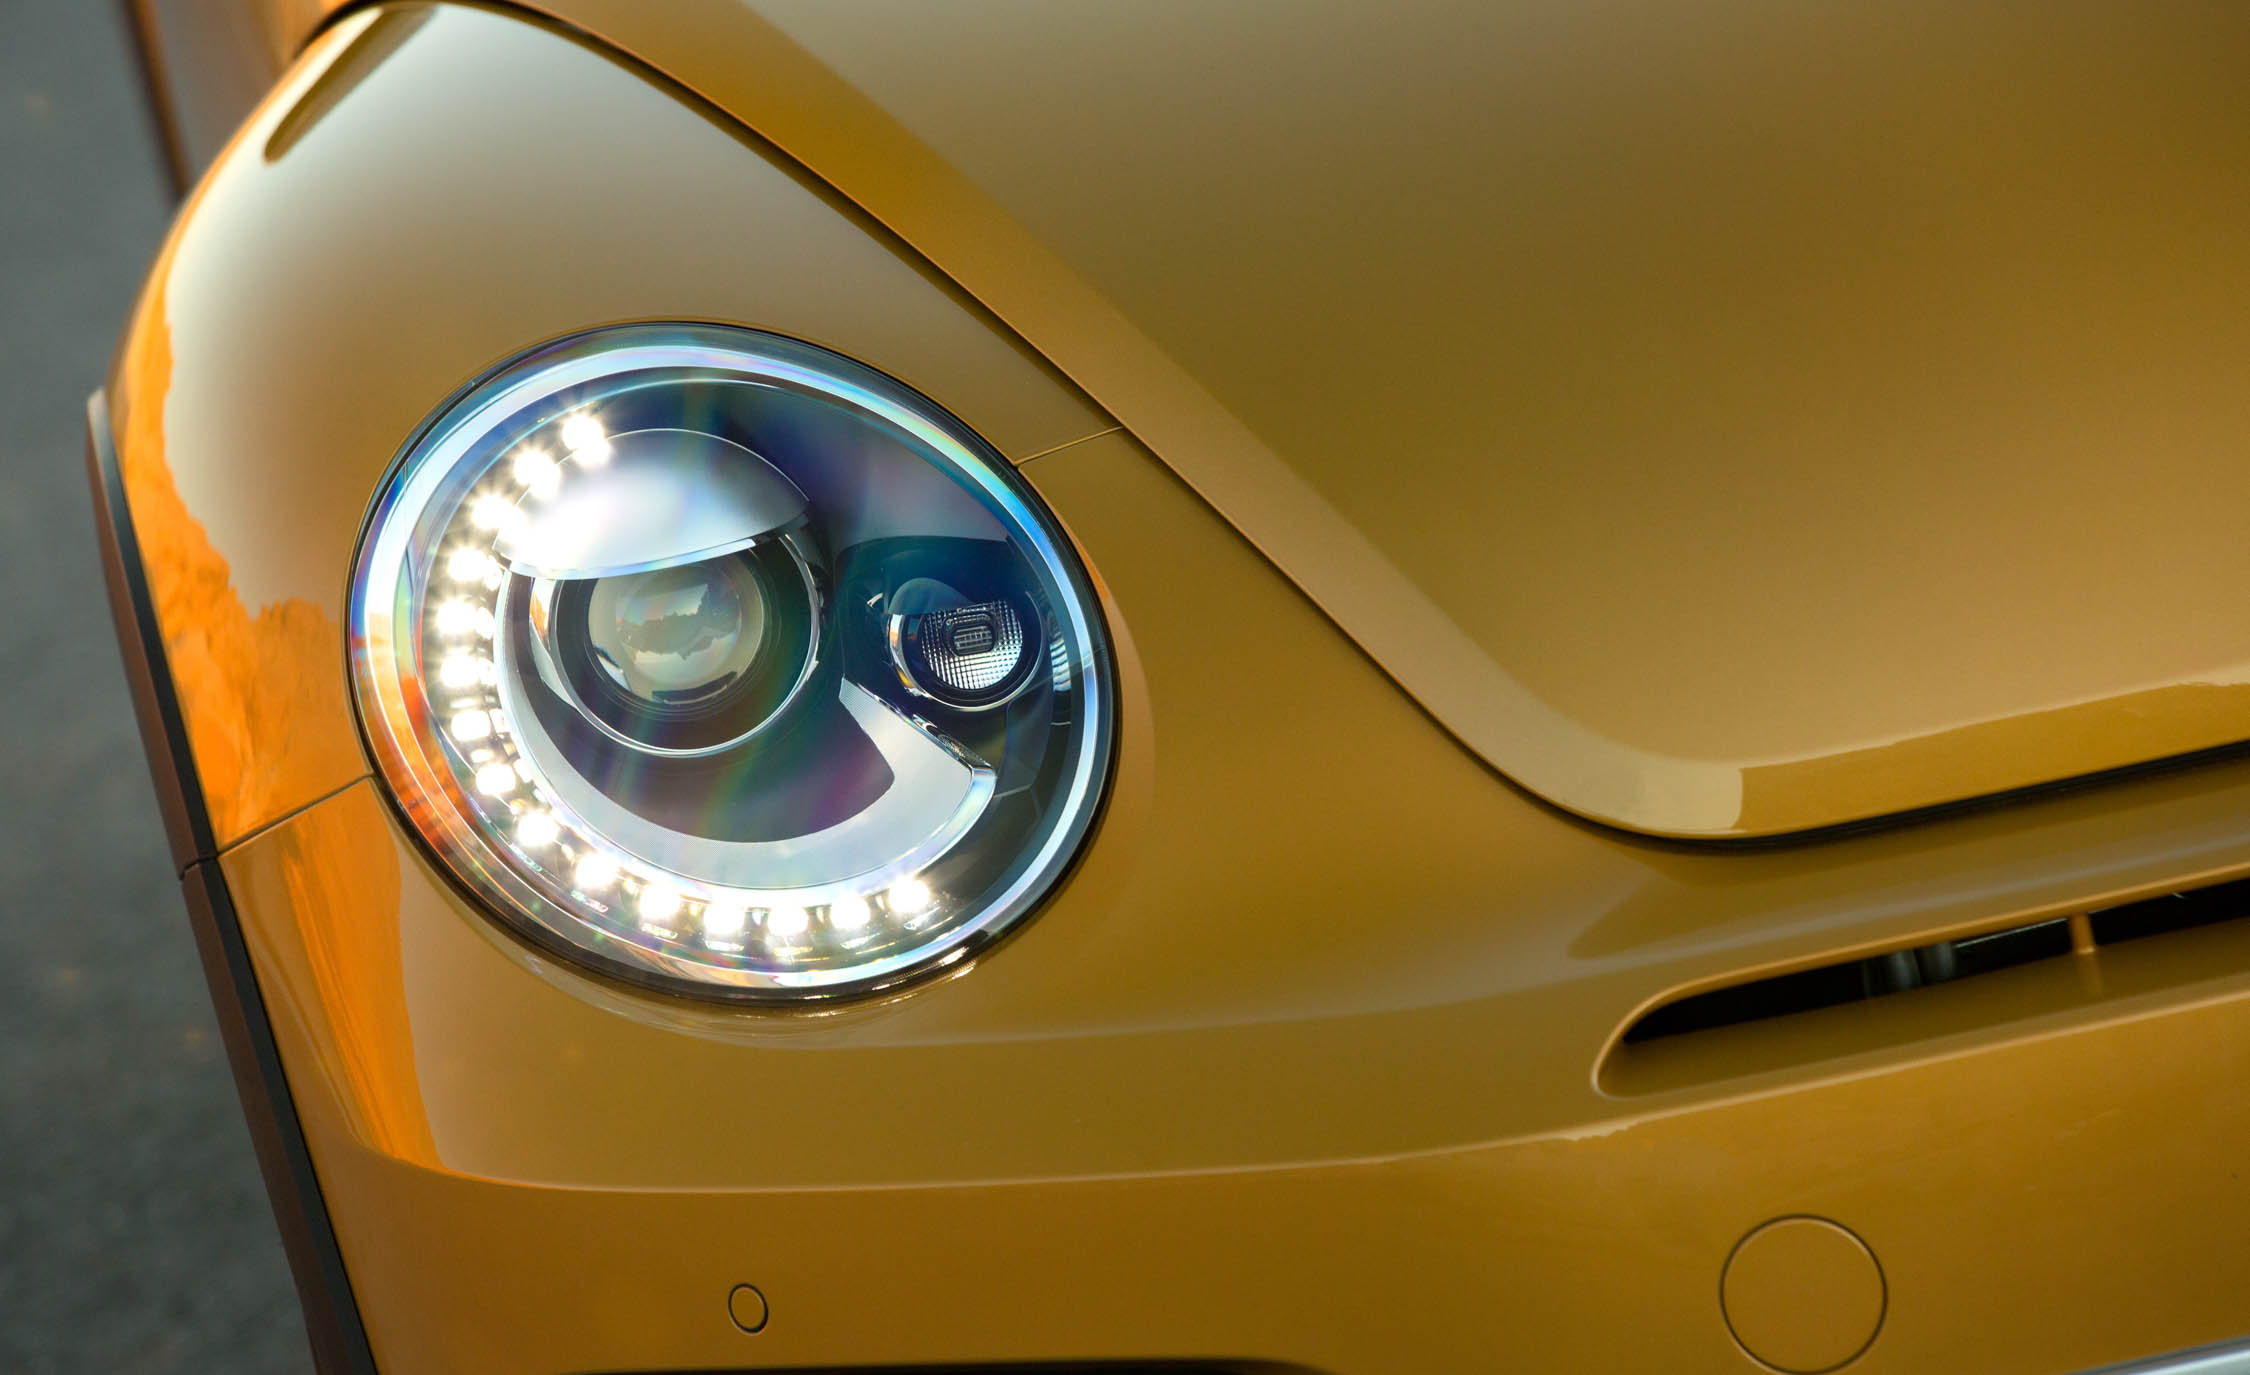 2016 Volkswagen Beetle Dune Exterior Headlight (Photo 20 of 32)